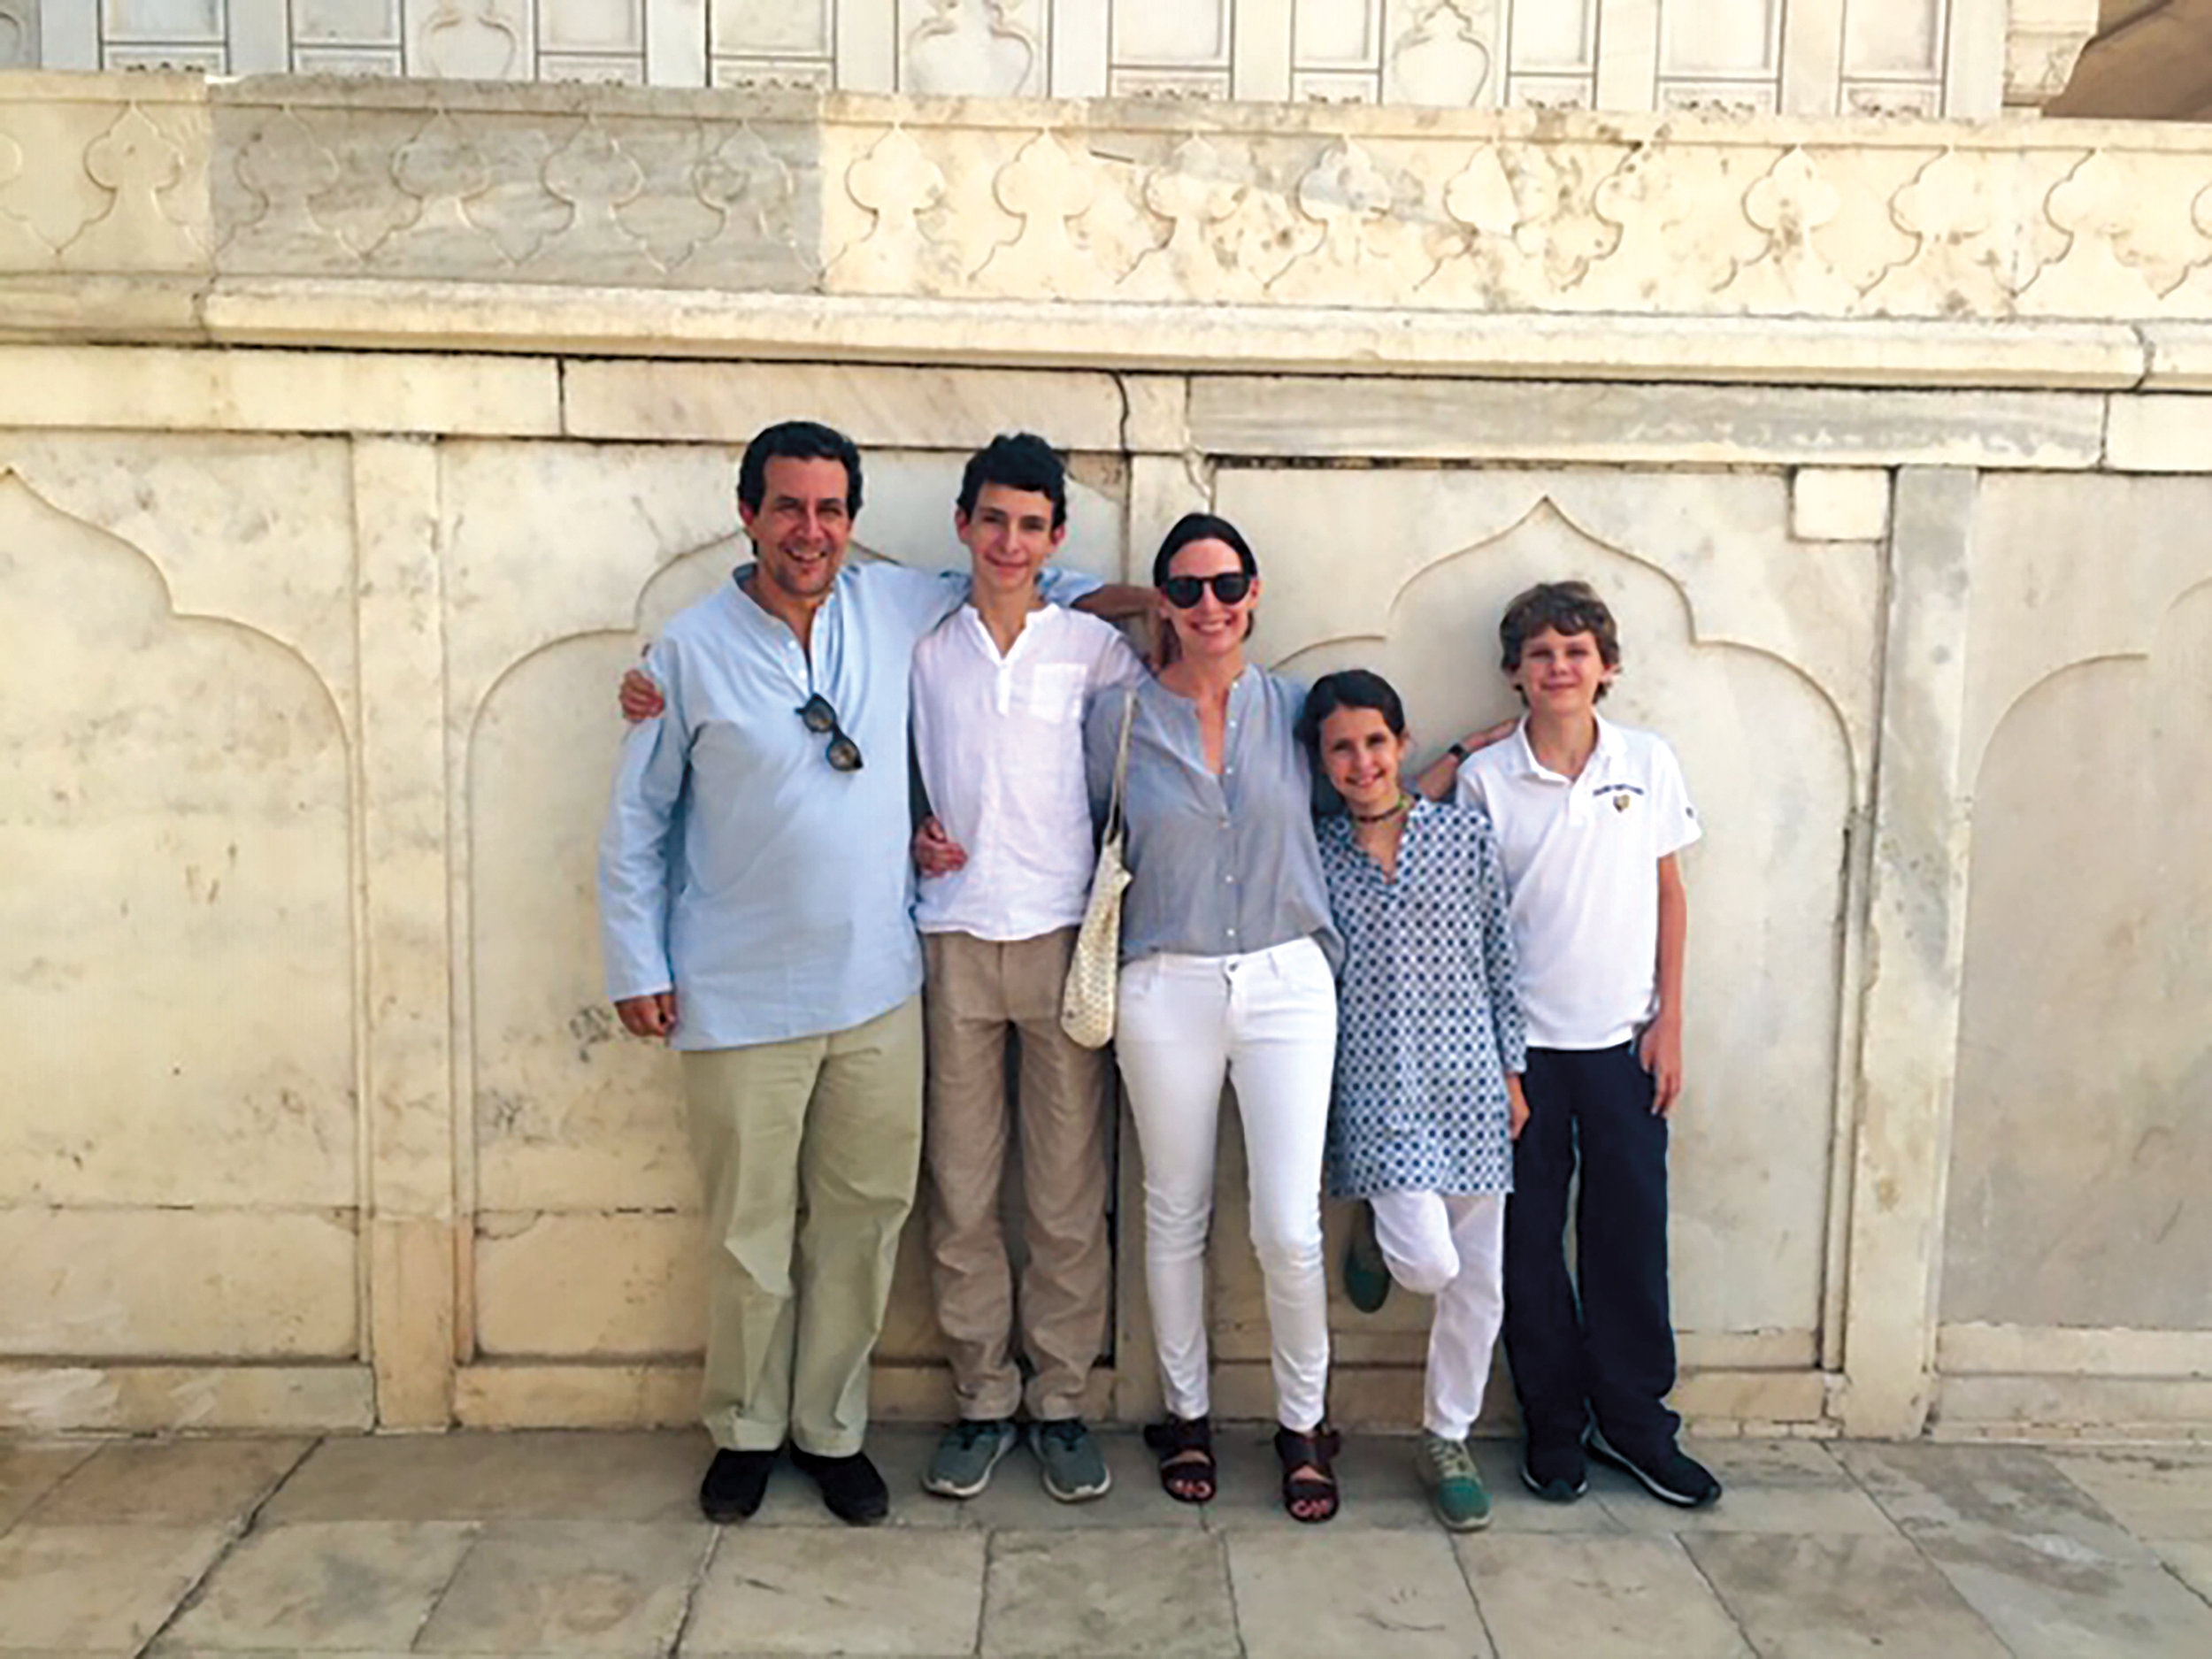 Caroline Cook '95 and her family at the Red Fort in Agra, India.